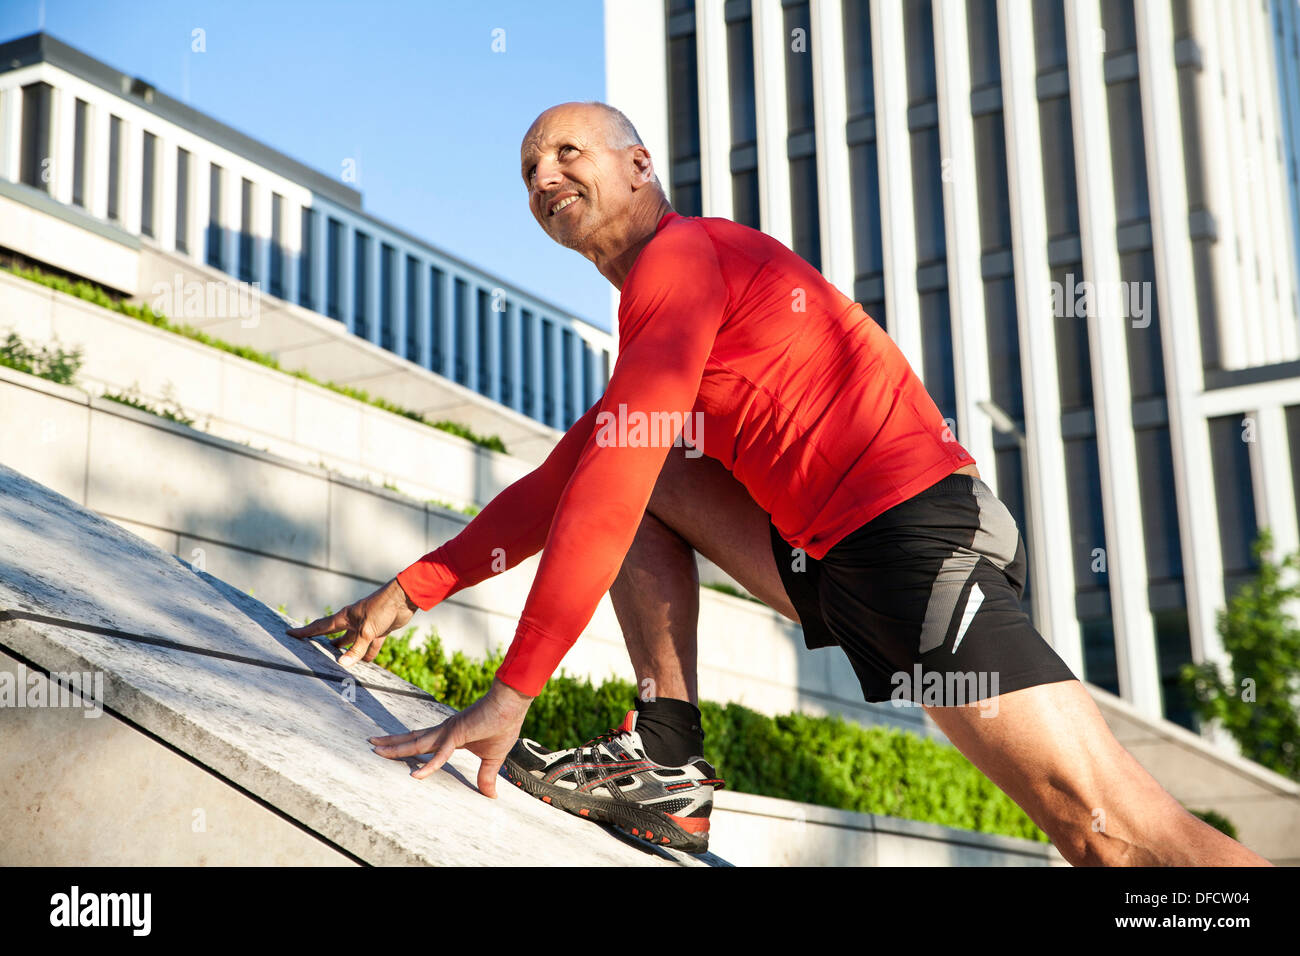 Mature athletic man stretching outdoors - Stock Image